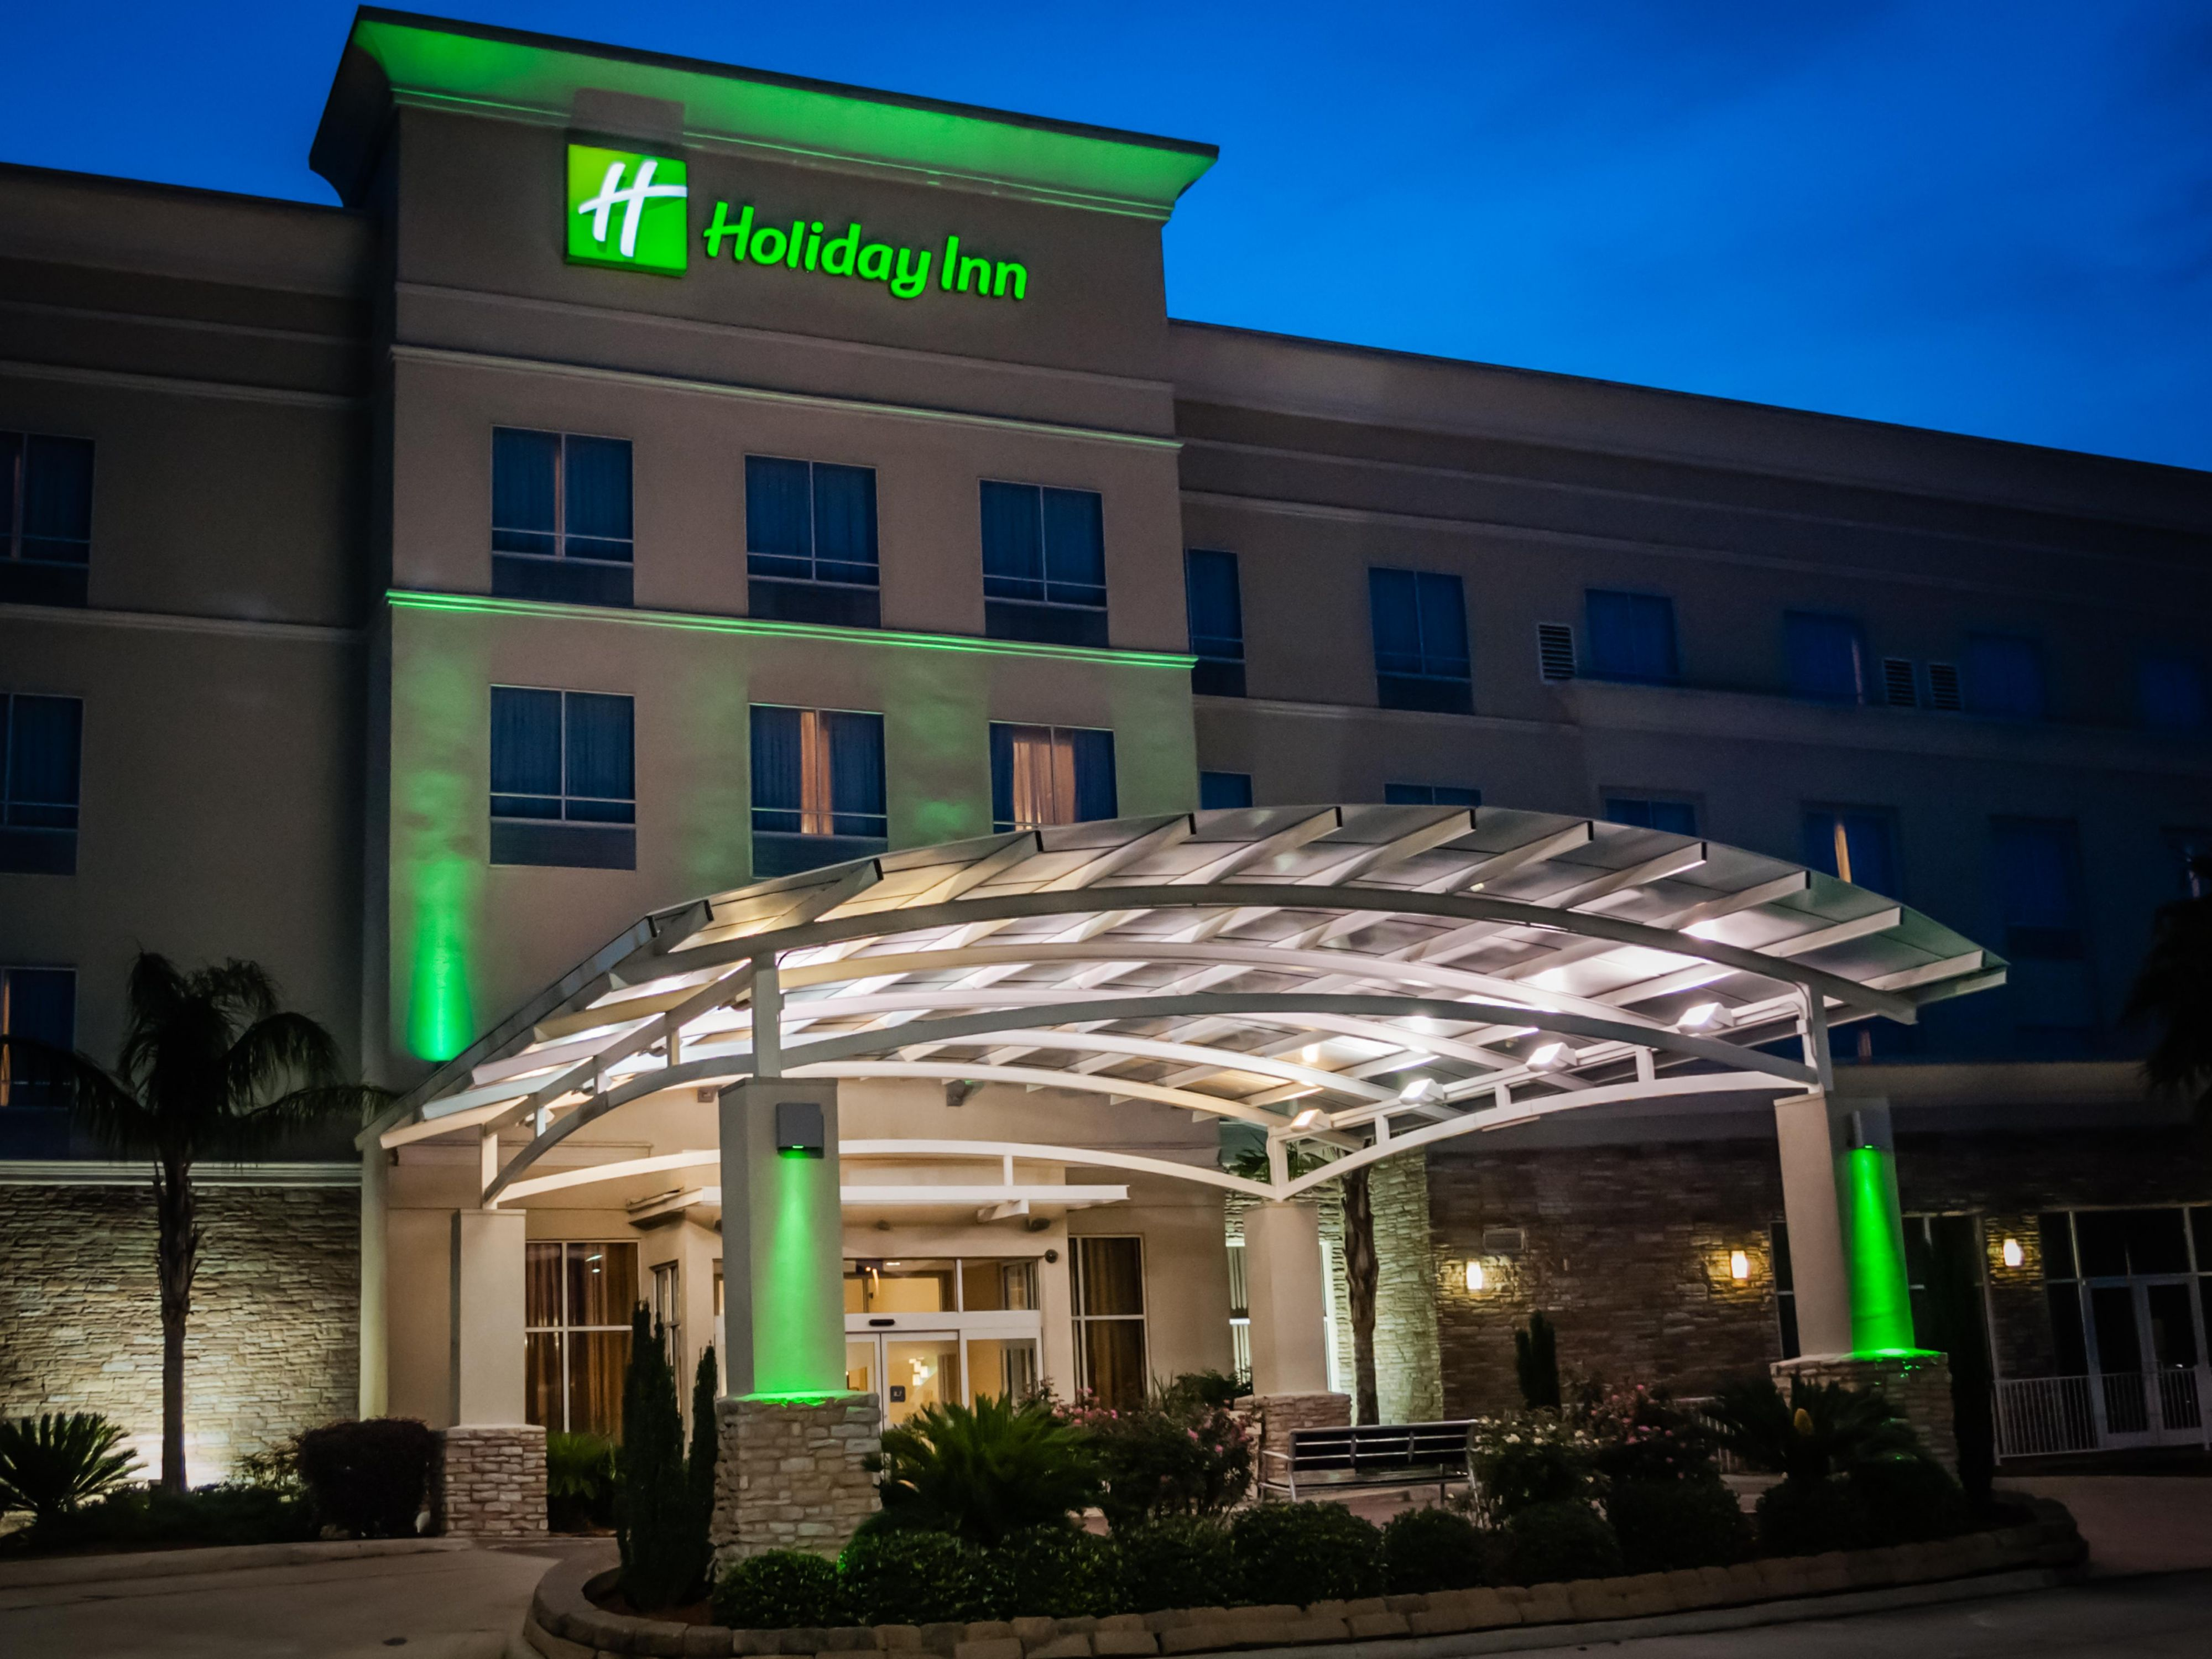 Holiday Inn Sulphur at night.